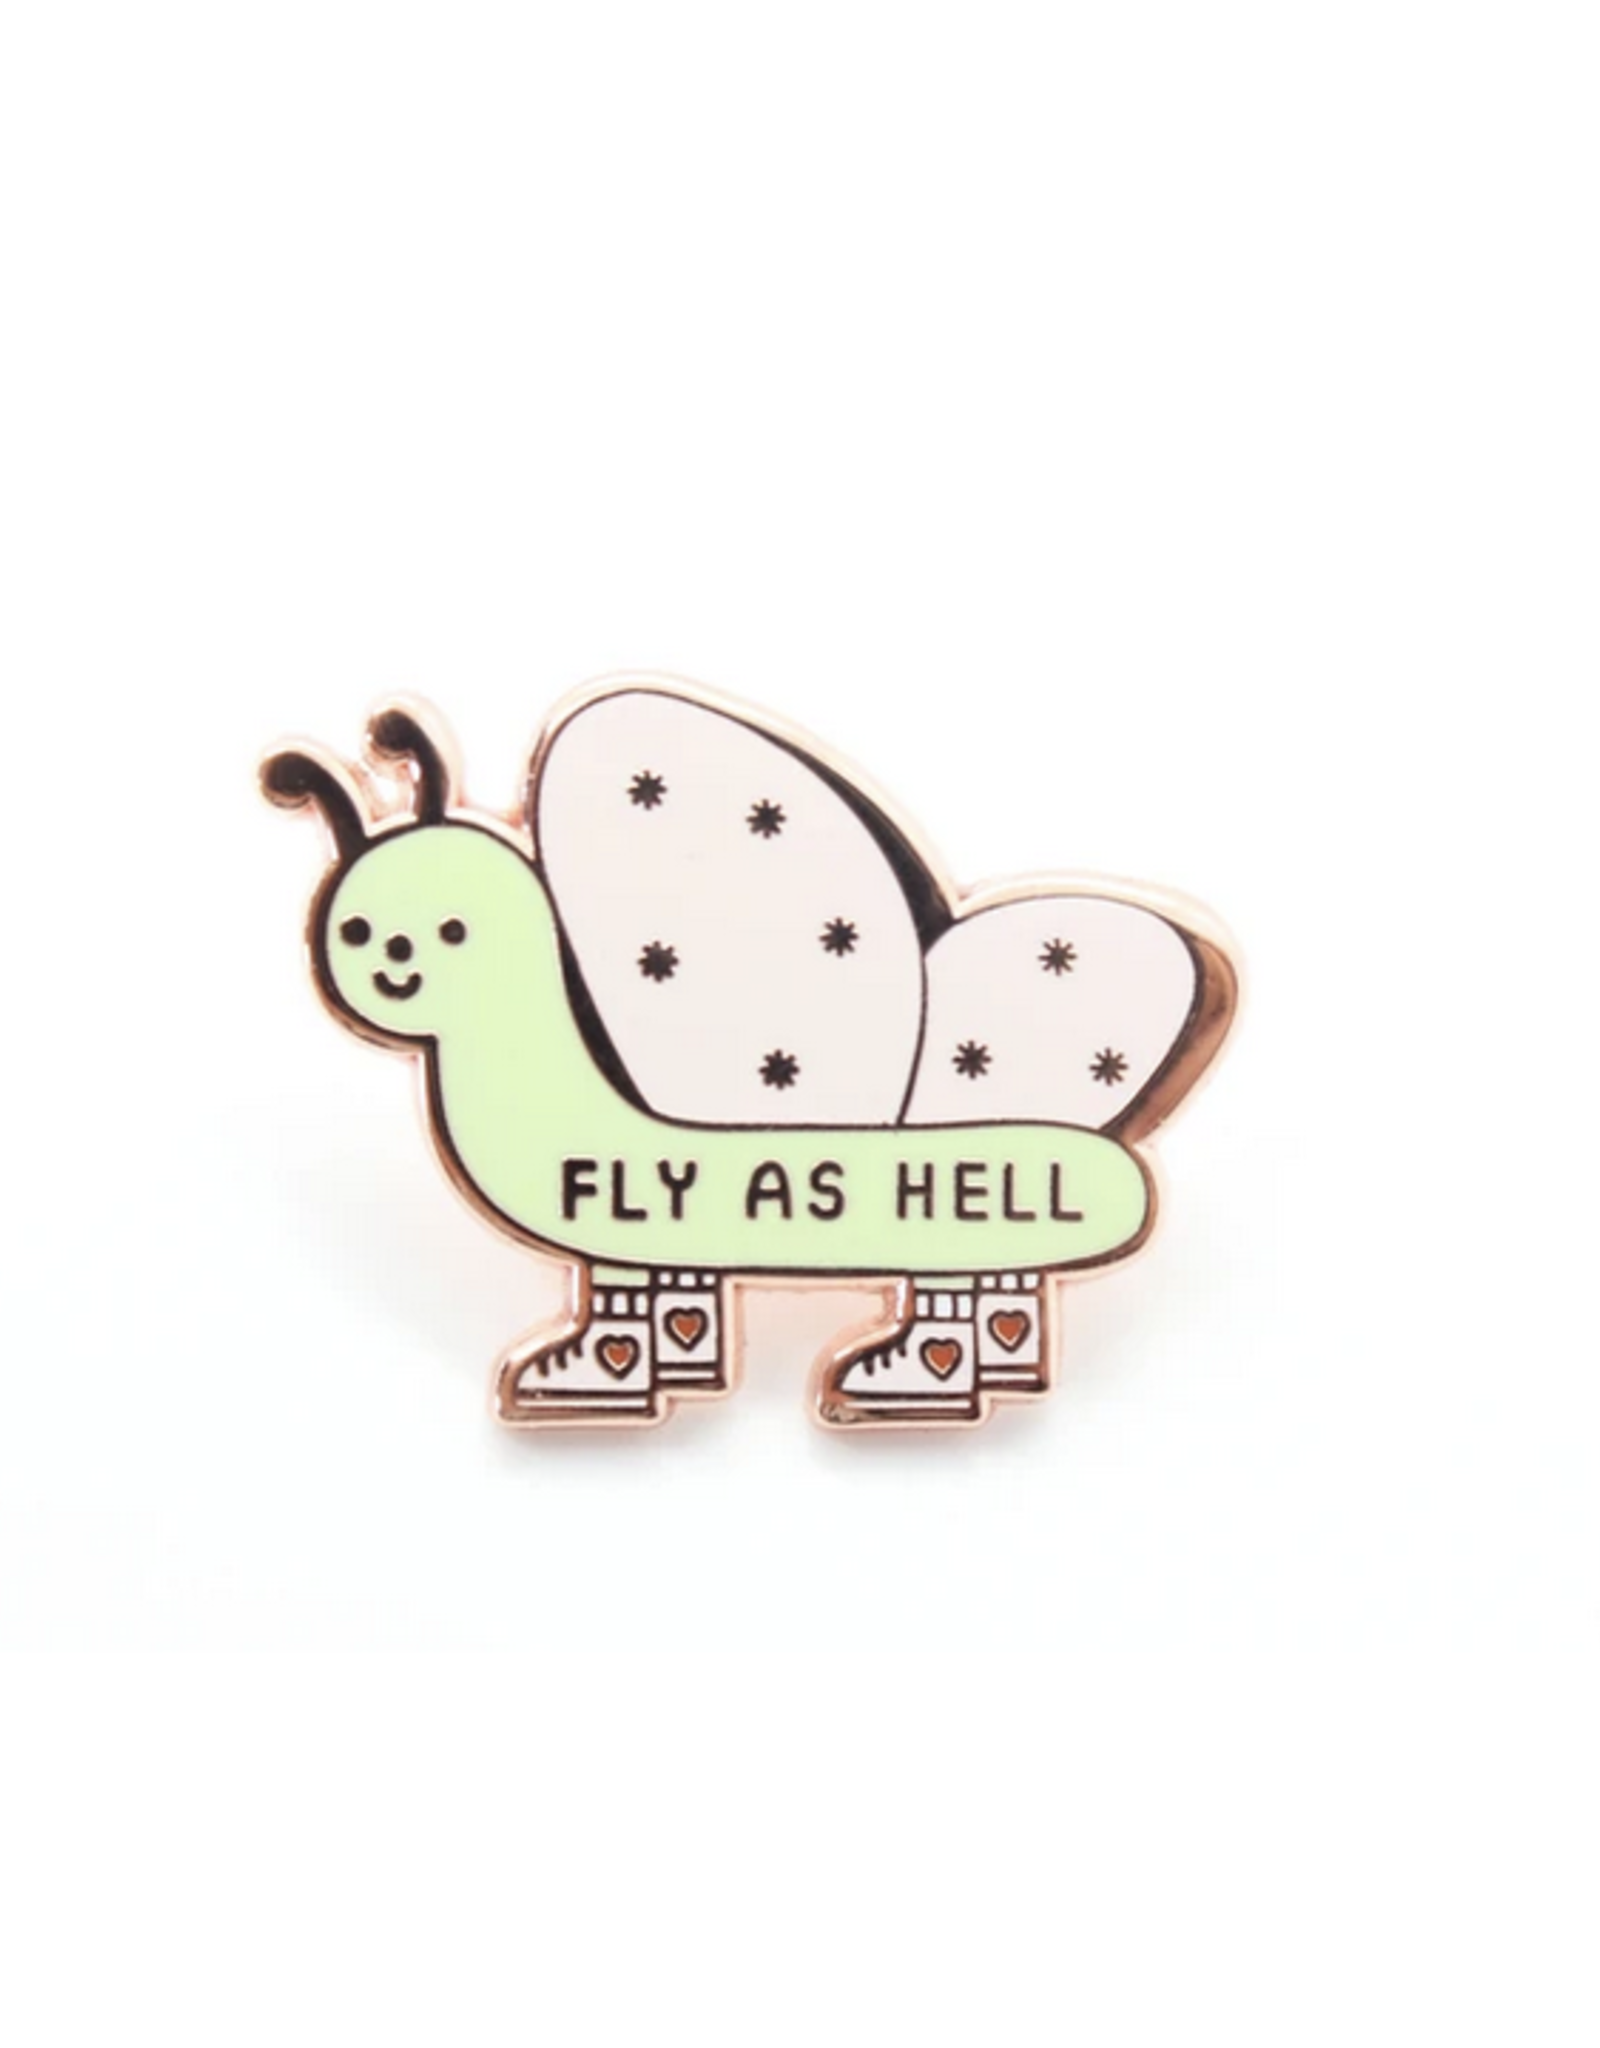 Fly As Hell Pin